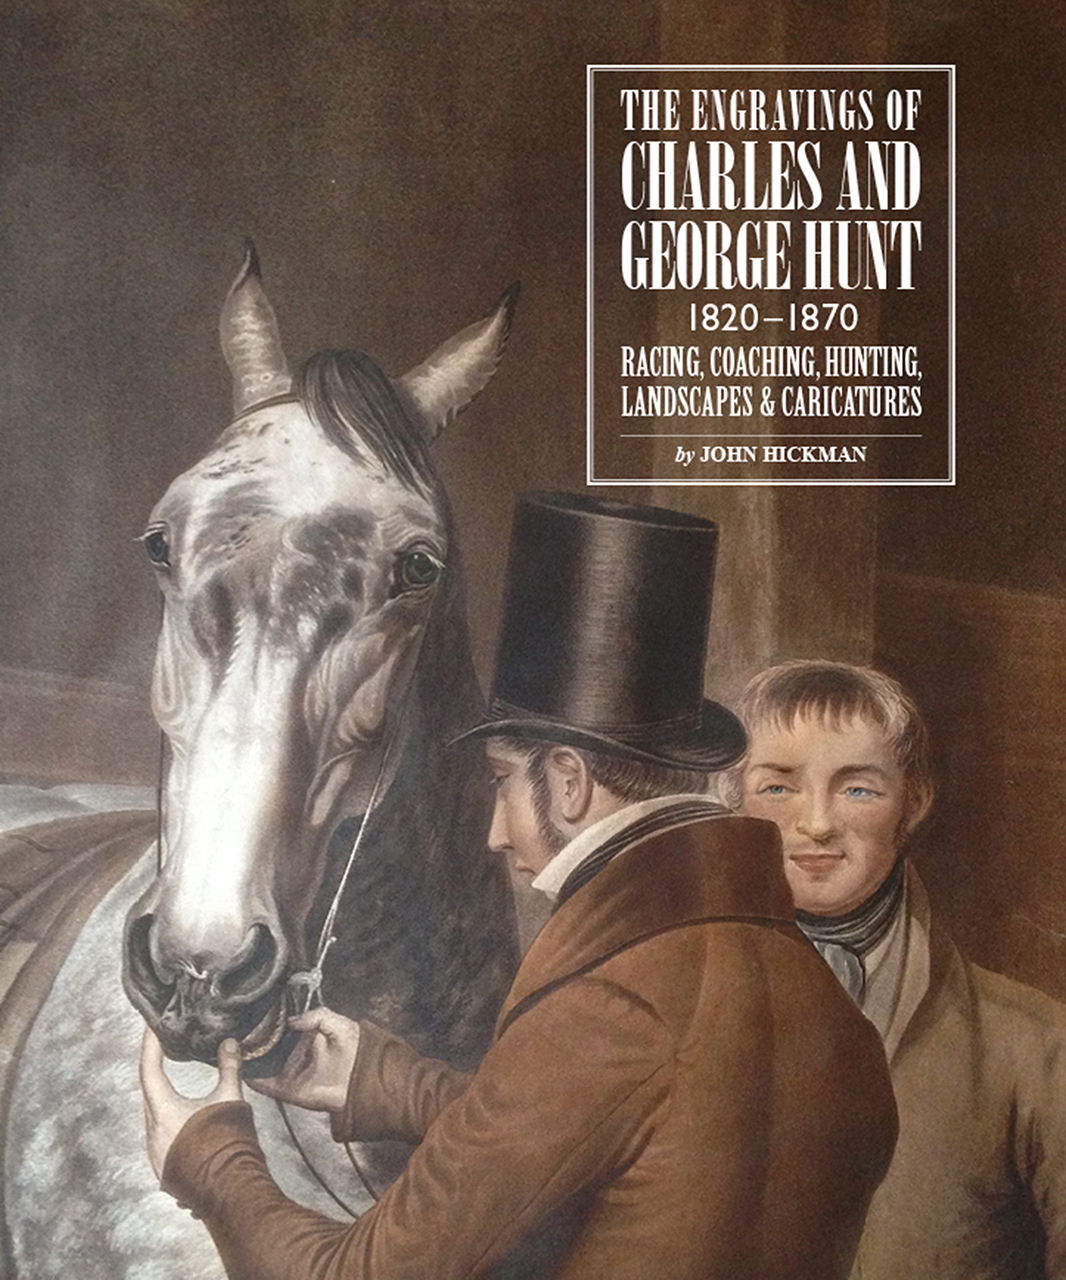 Engravings of Charles & George Hunt: 1820–1870 Racing, Coaching, Hunting, Landscapes & Caricatures